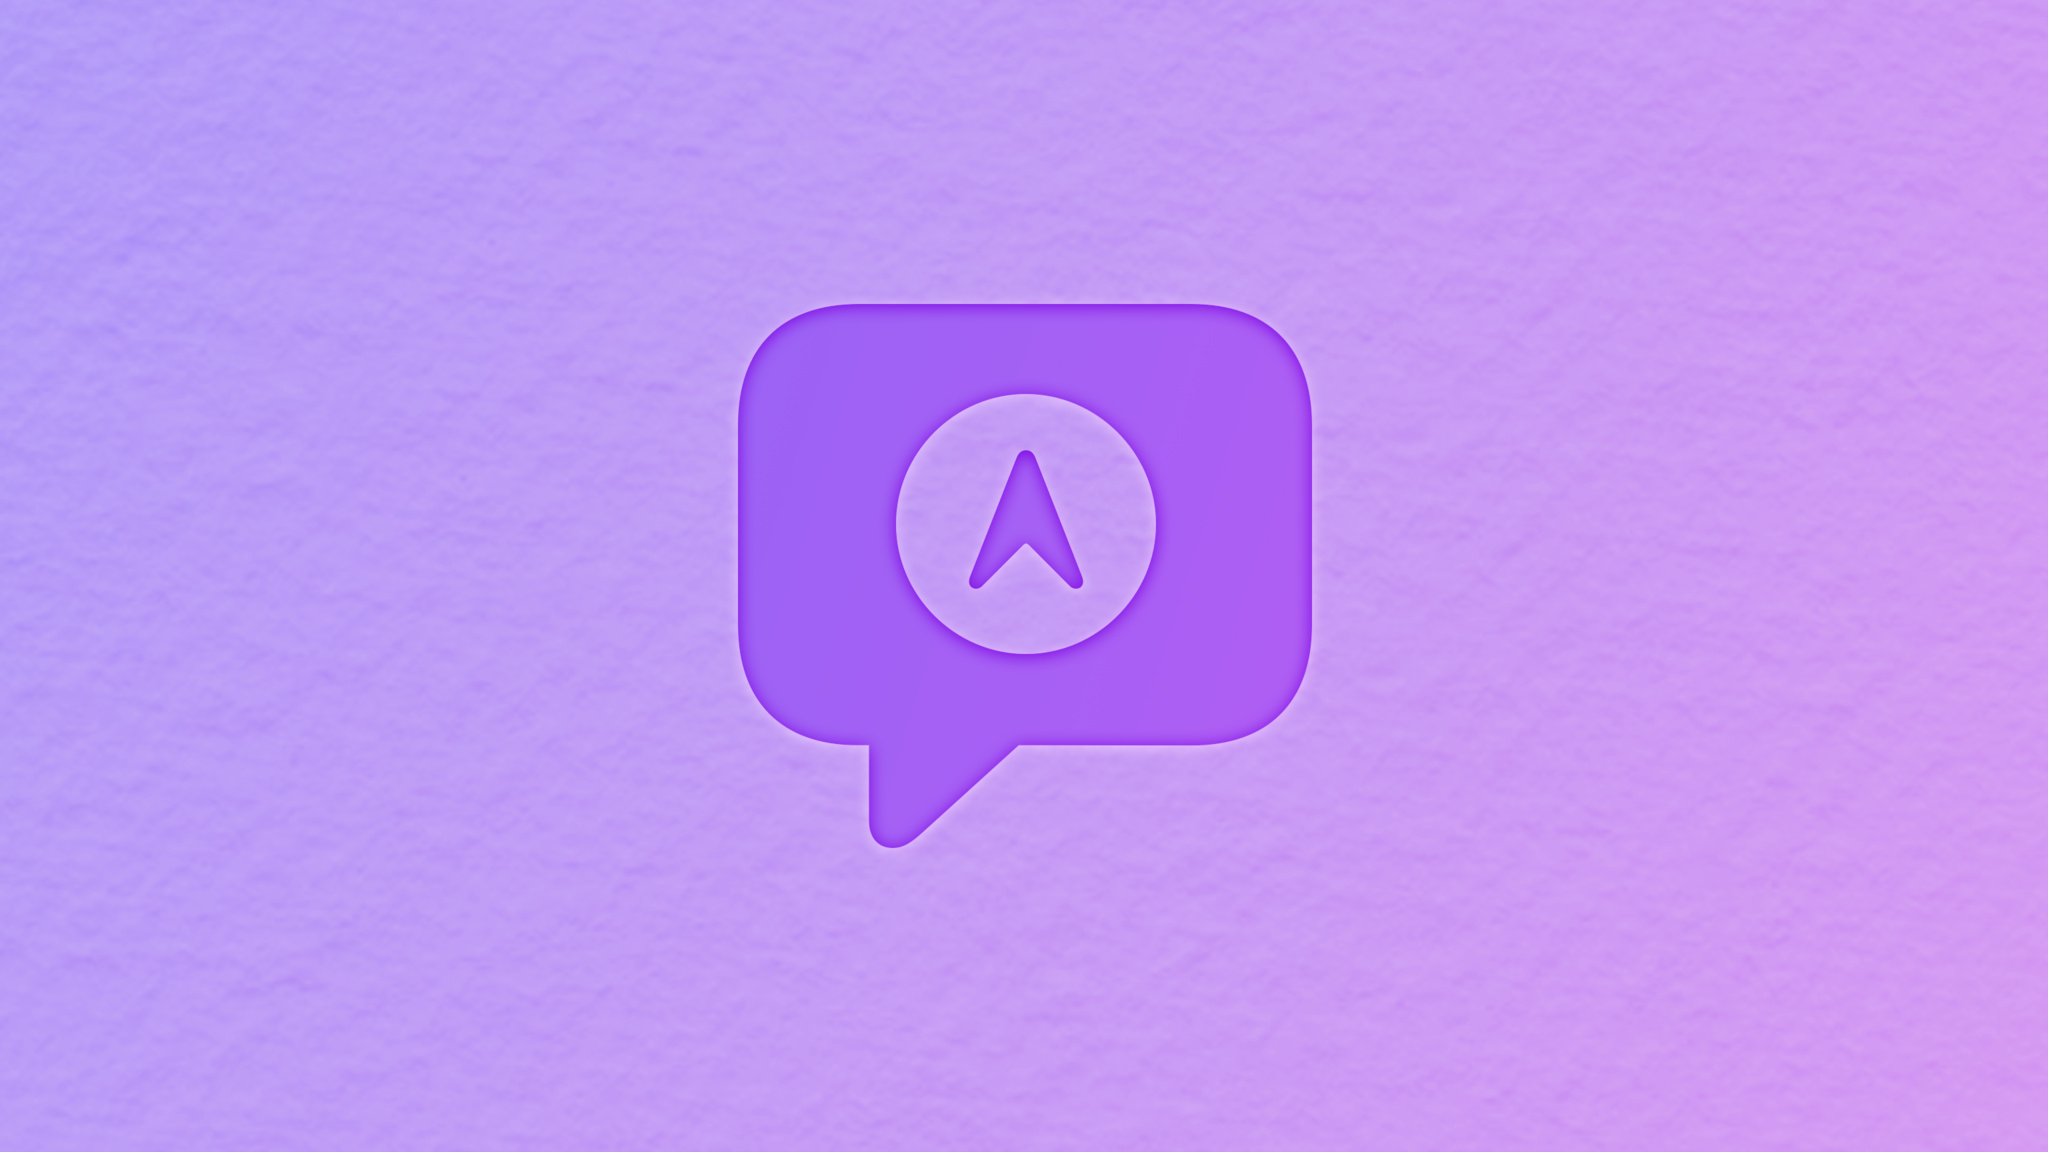 Speak bubble symbol with a pointing arrow location symbol inside